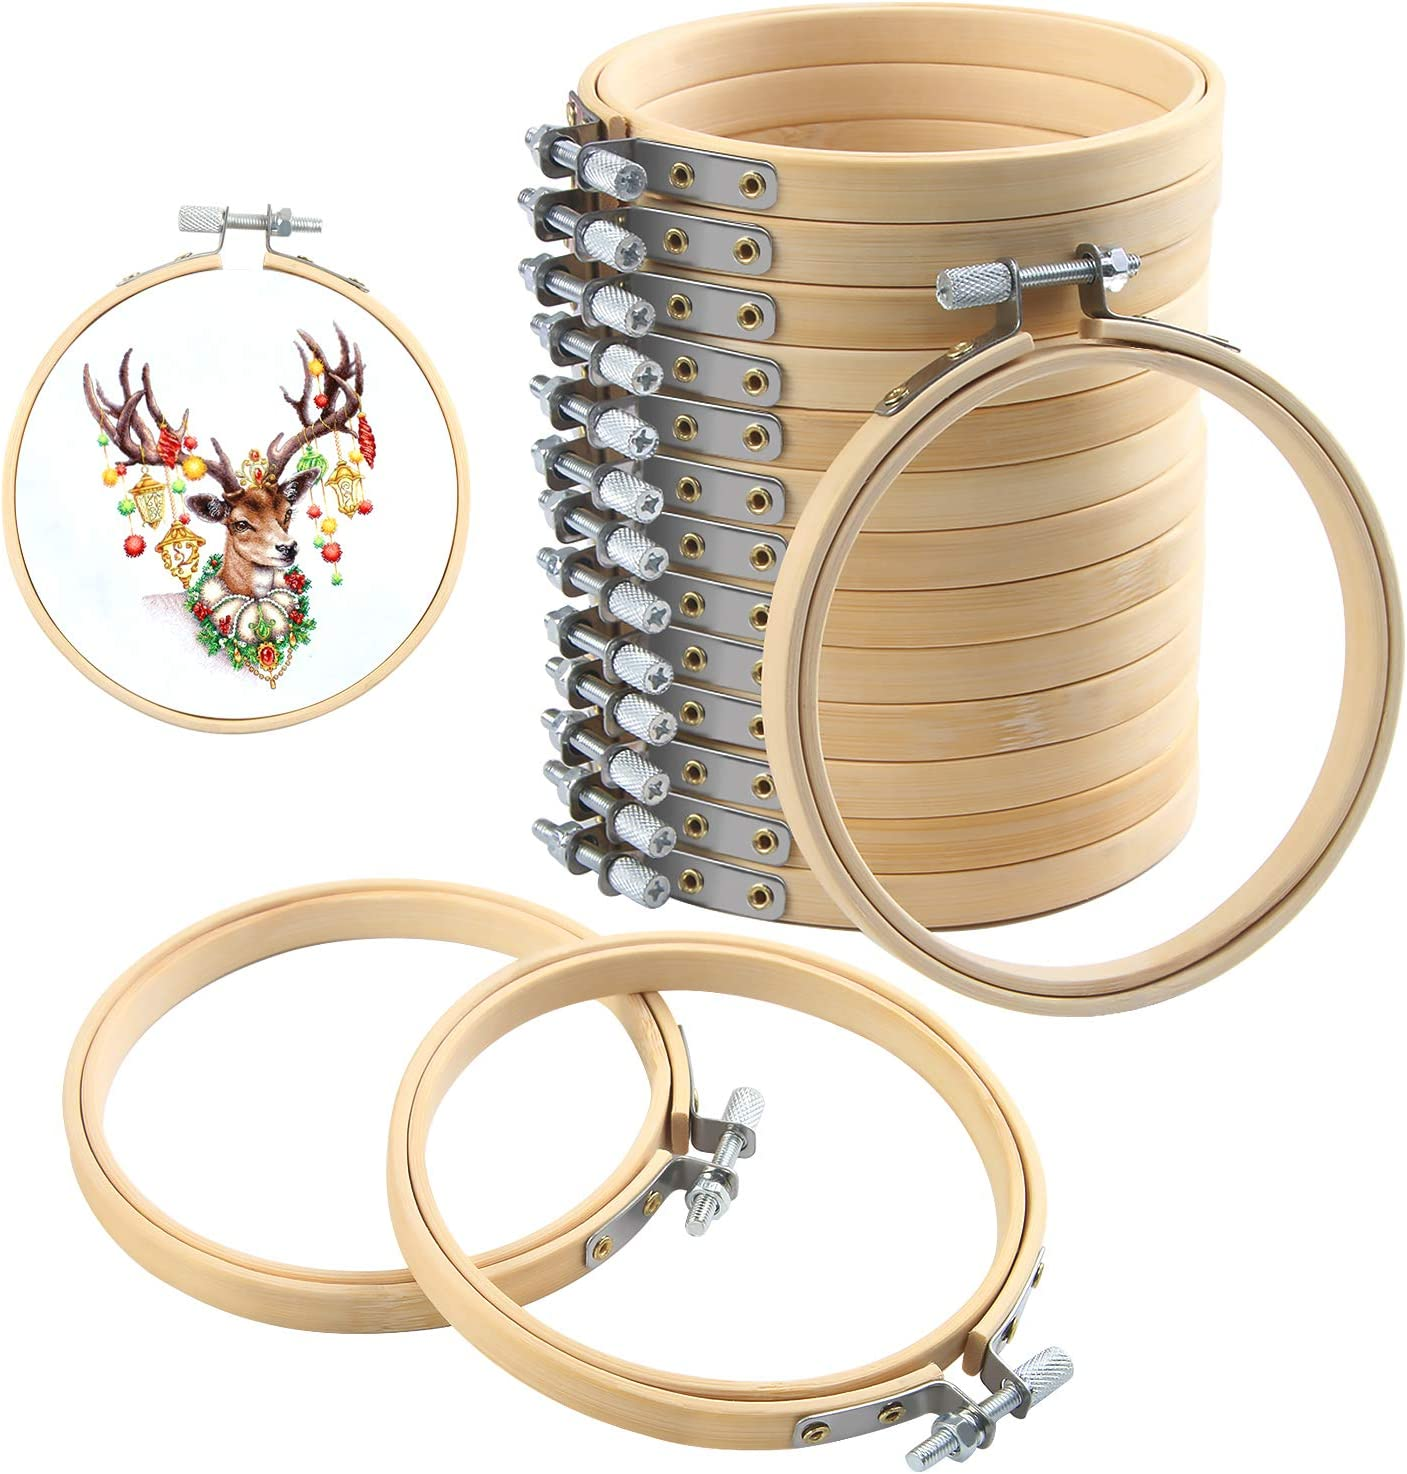 Flurries⭕ 4 Pieces Embroidery Hoops Set DIY Tool Kit 6.7 7.8 9 10.2 Bamboo Wood Frame Circle Cross Stitch Rings for Art Craft Handy Sewing Needlework Dream Catcher Ornament Gift